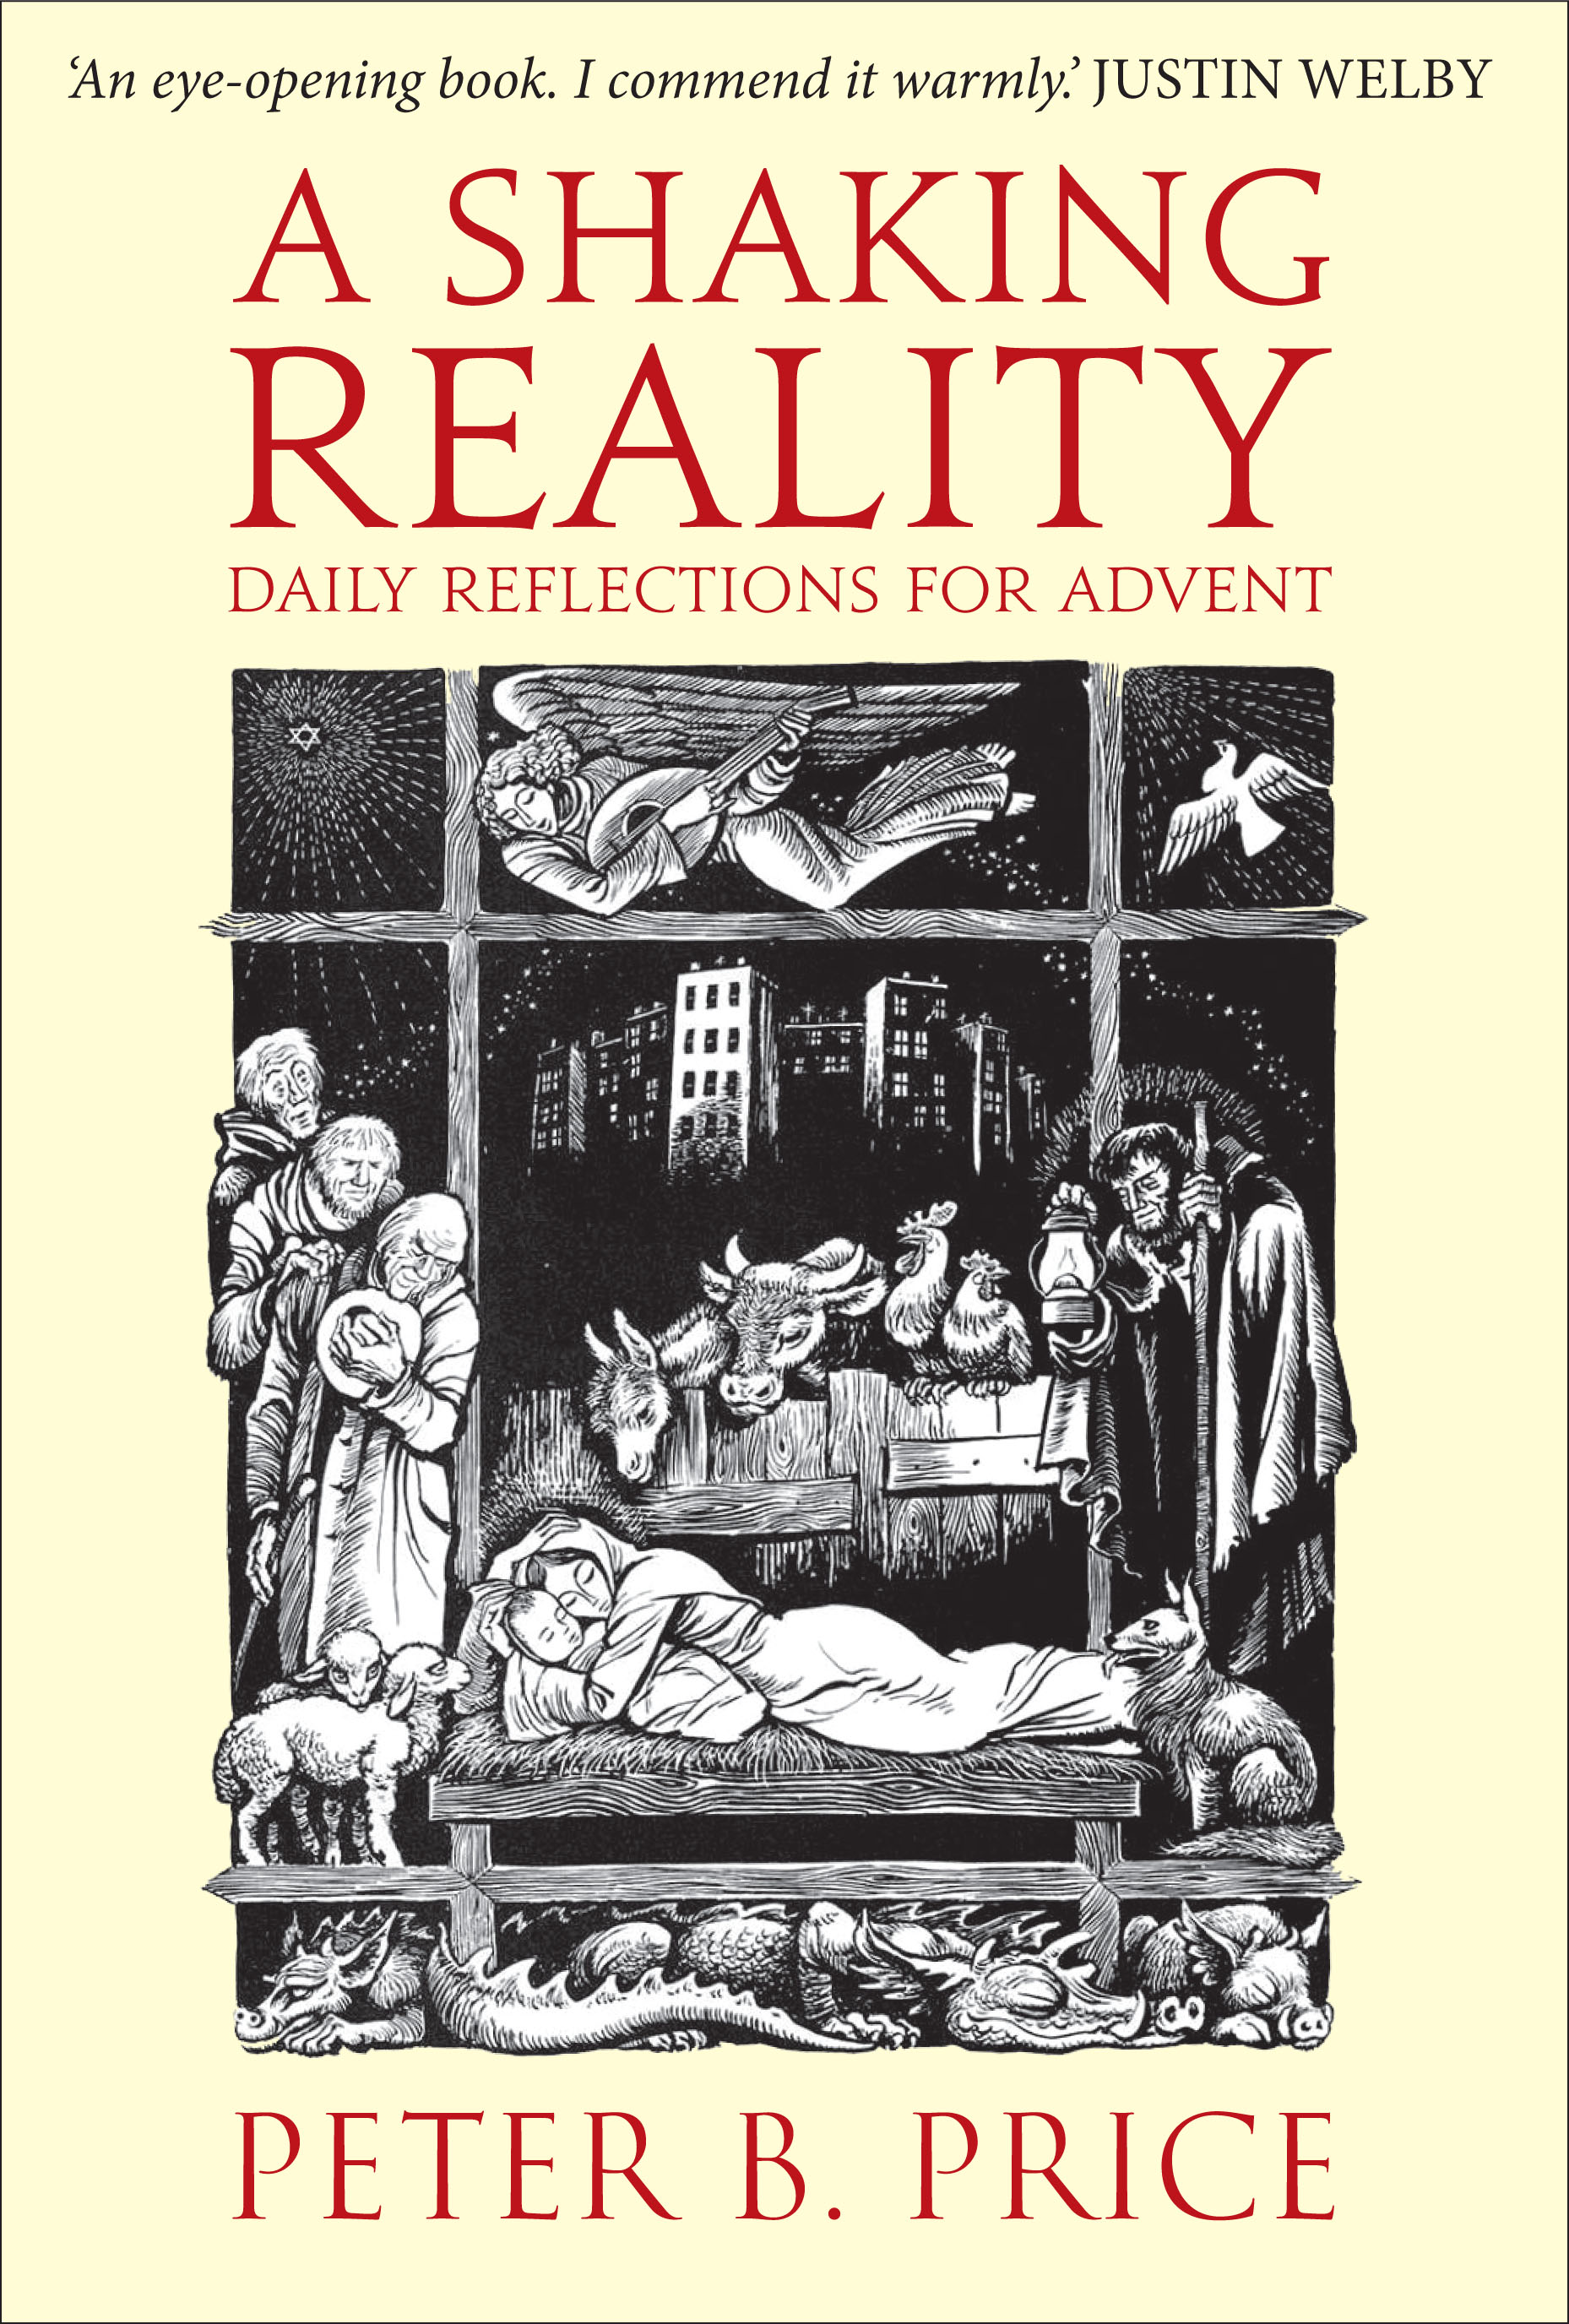 A Shaking Reality, by Bishop Peter Price